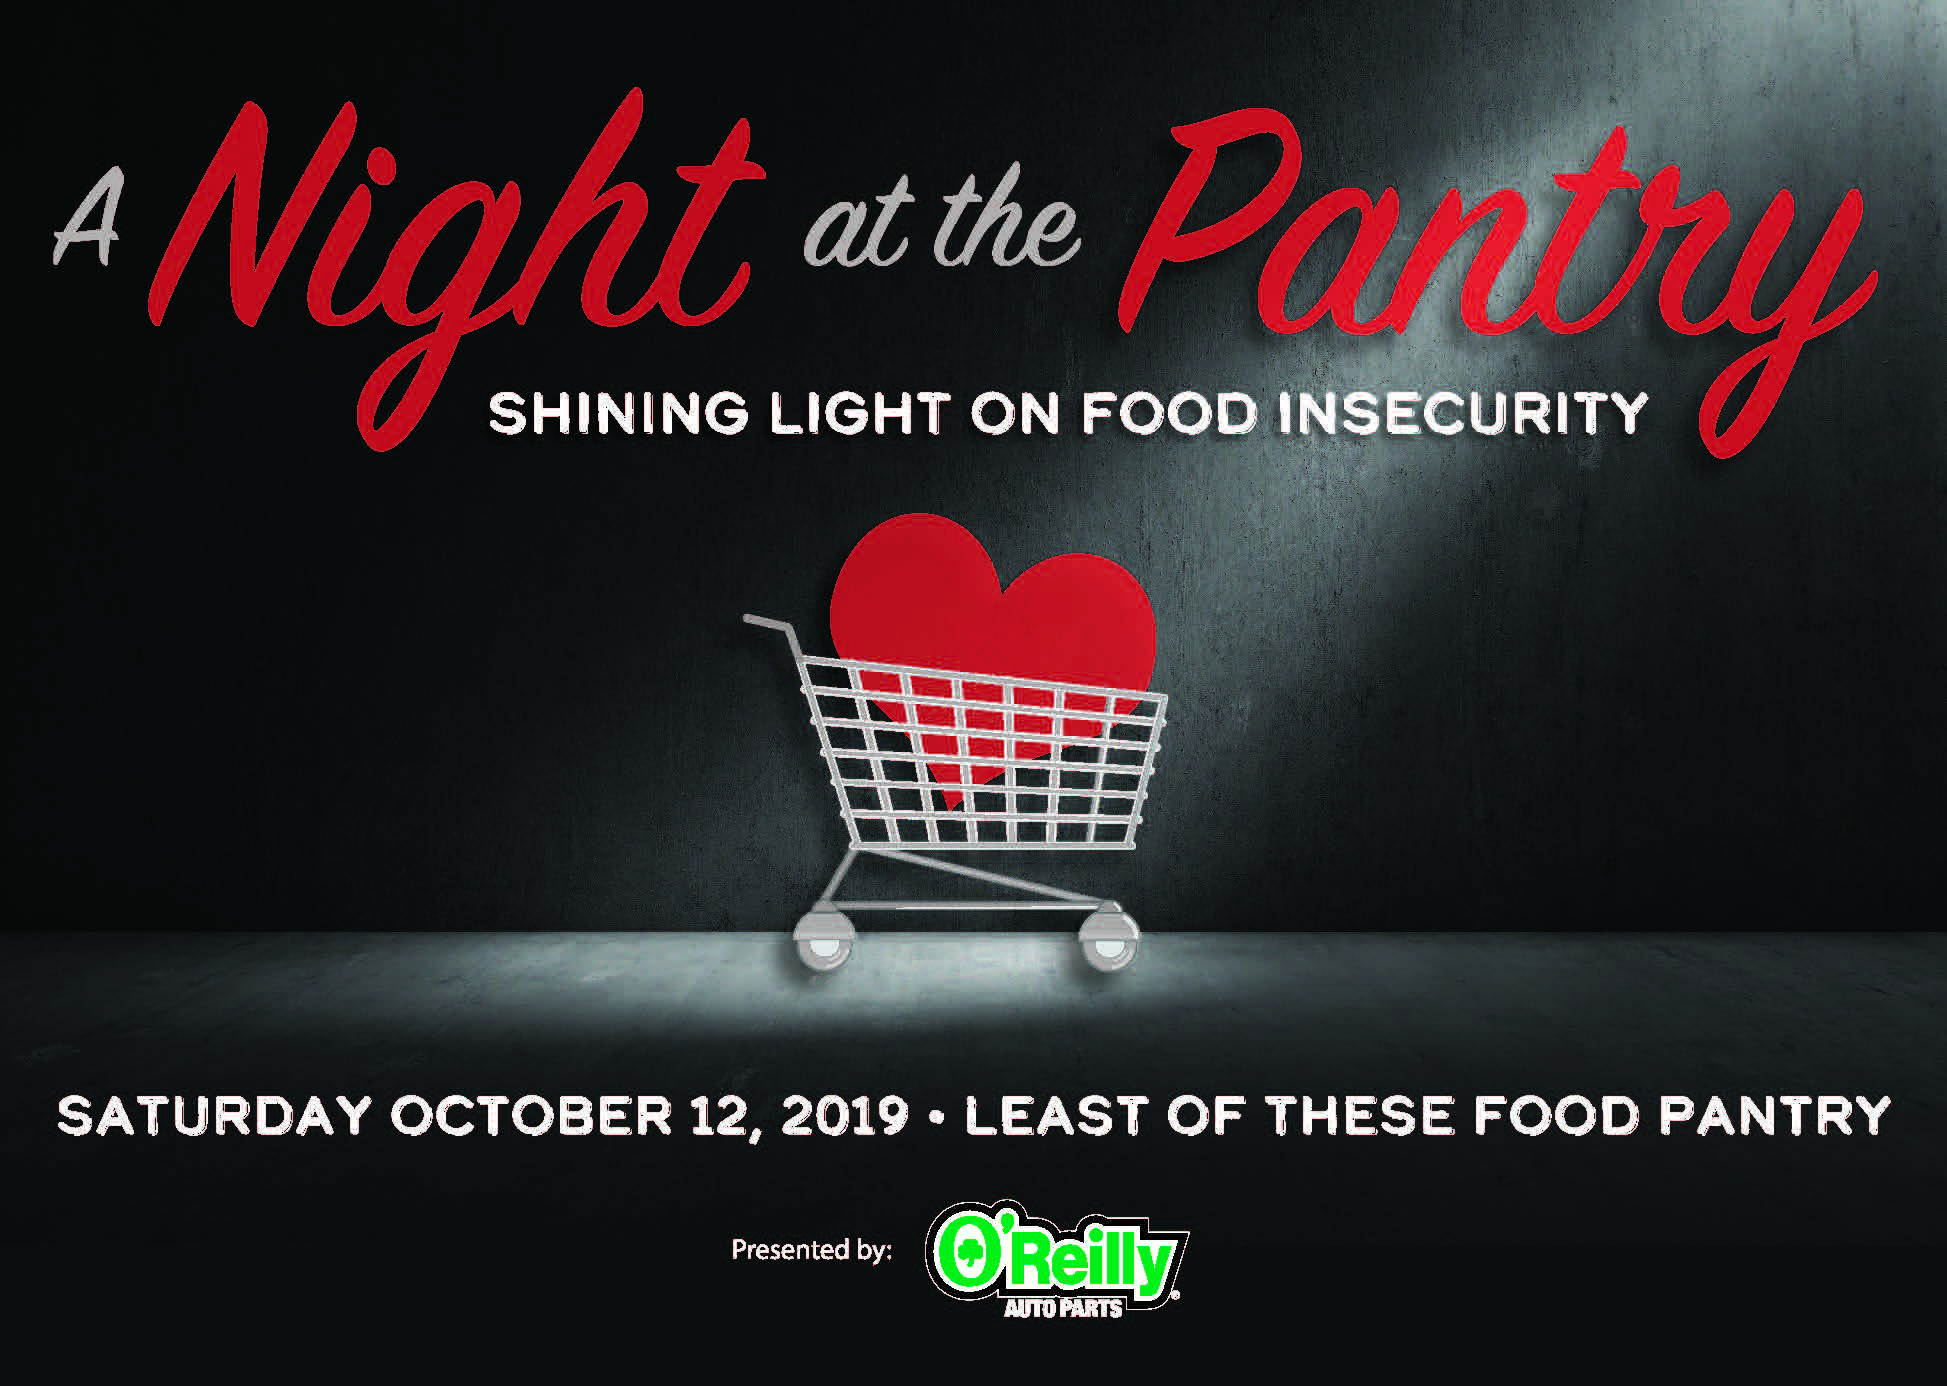 A Night at the Pantry Presented by O'Reilly Auto Parts Shining Light on Food Insecurity